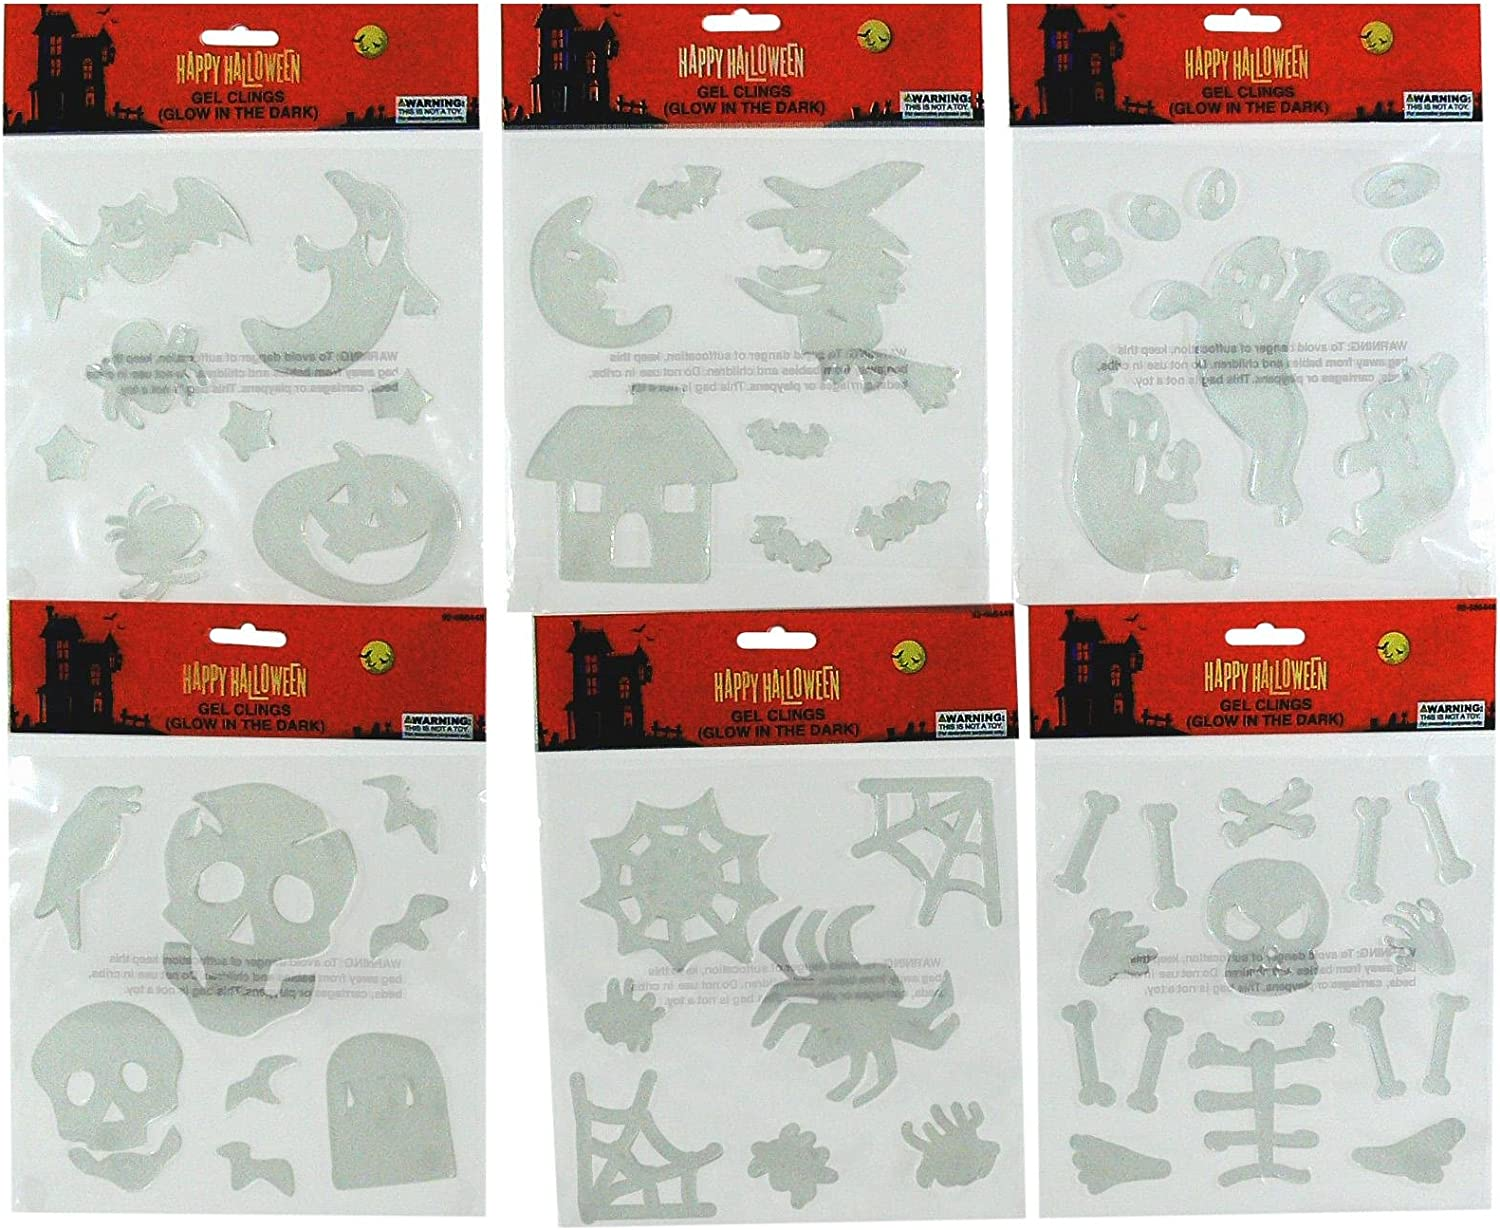 6 Sheets of Bats Halloween Glow-In-The-Dark Gel Clings Bundle Witches,Skull and Crossbones and Other Halloween Related Figures Ghosts